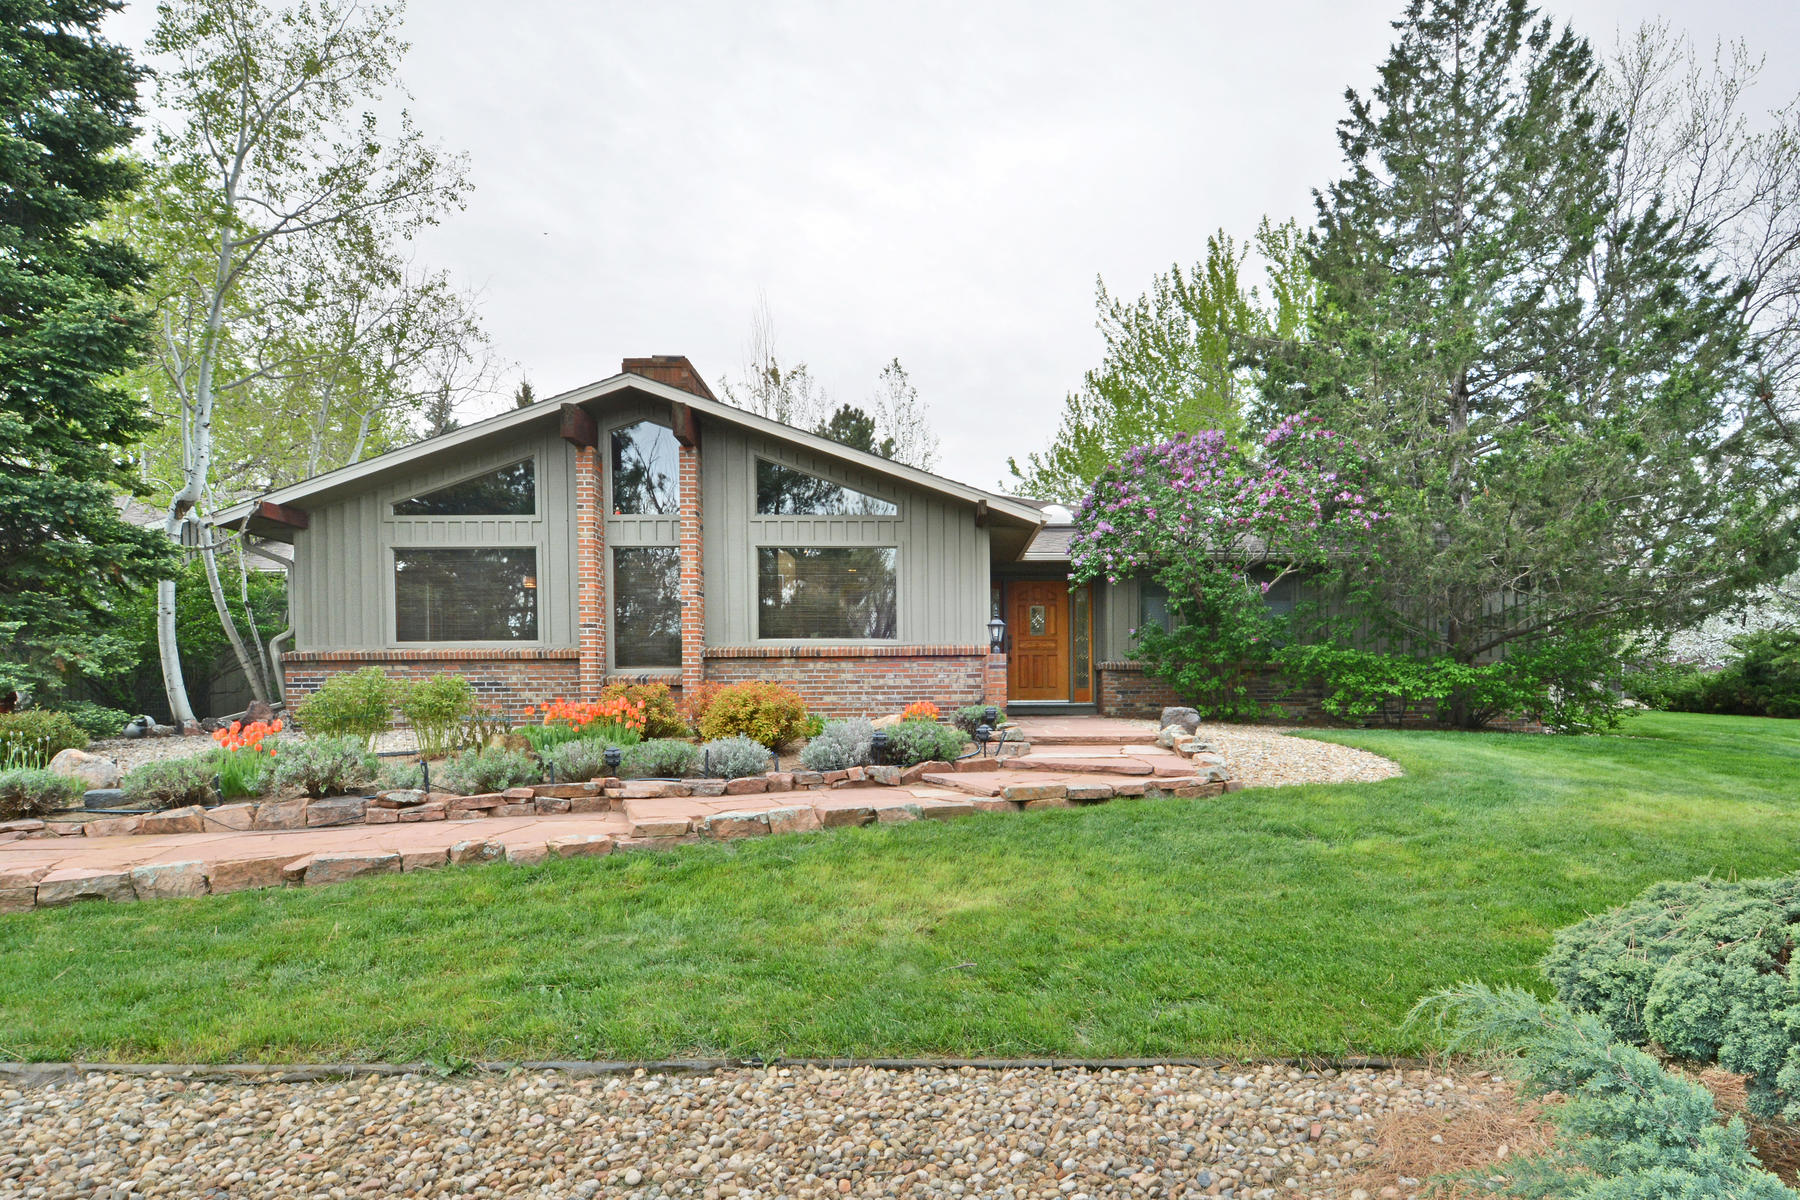 Single Family Home for Active at Bright Home Nestled On A Peaceful Oasis 7666 O Connor Rd Boulder, Colorado 80303 United States